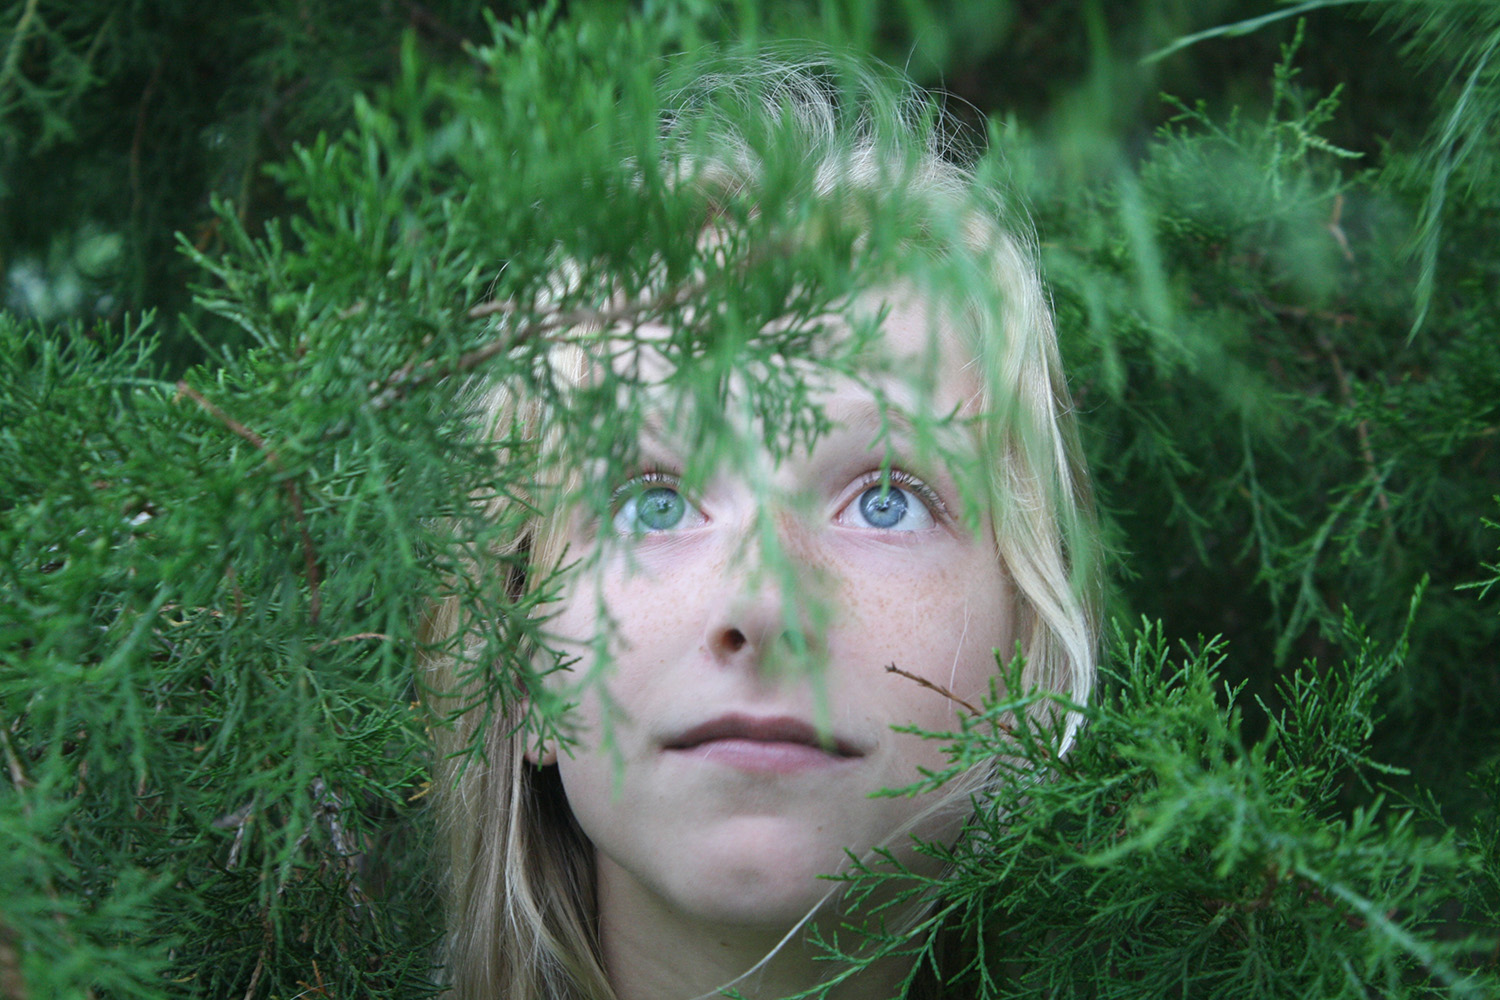 Girl hidden in pine branches via Unsplash